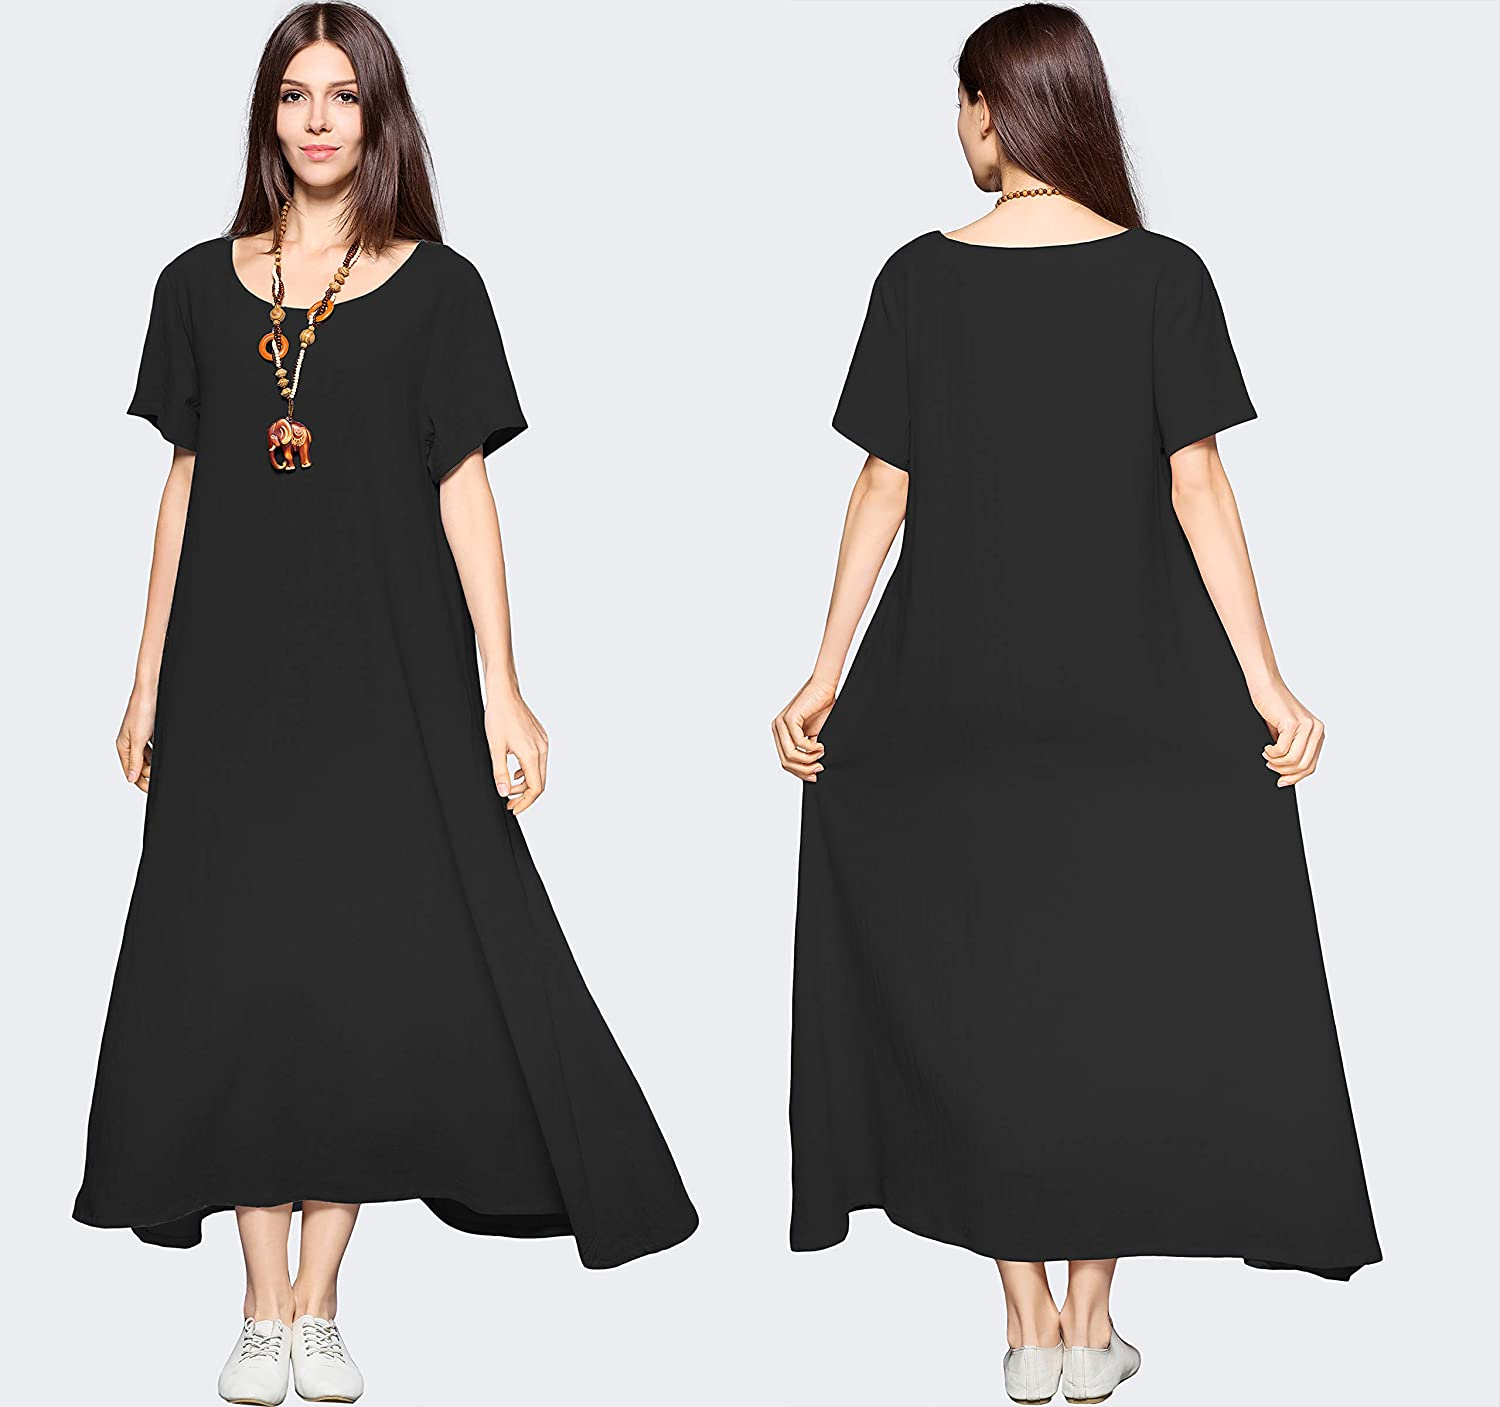 419d1d9d2a1f Anysize Side Pockets Linen Cotton Soft Loose Dress Spring Summer Plus Size  Clothing F131A at Amazon Women s Clothing store